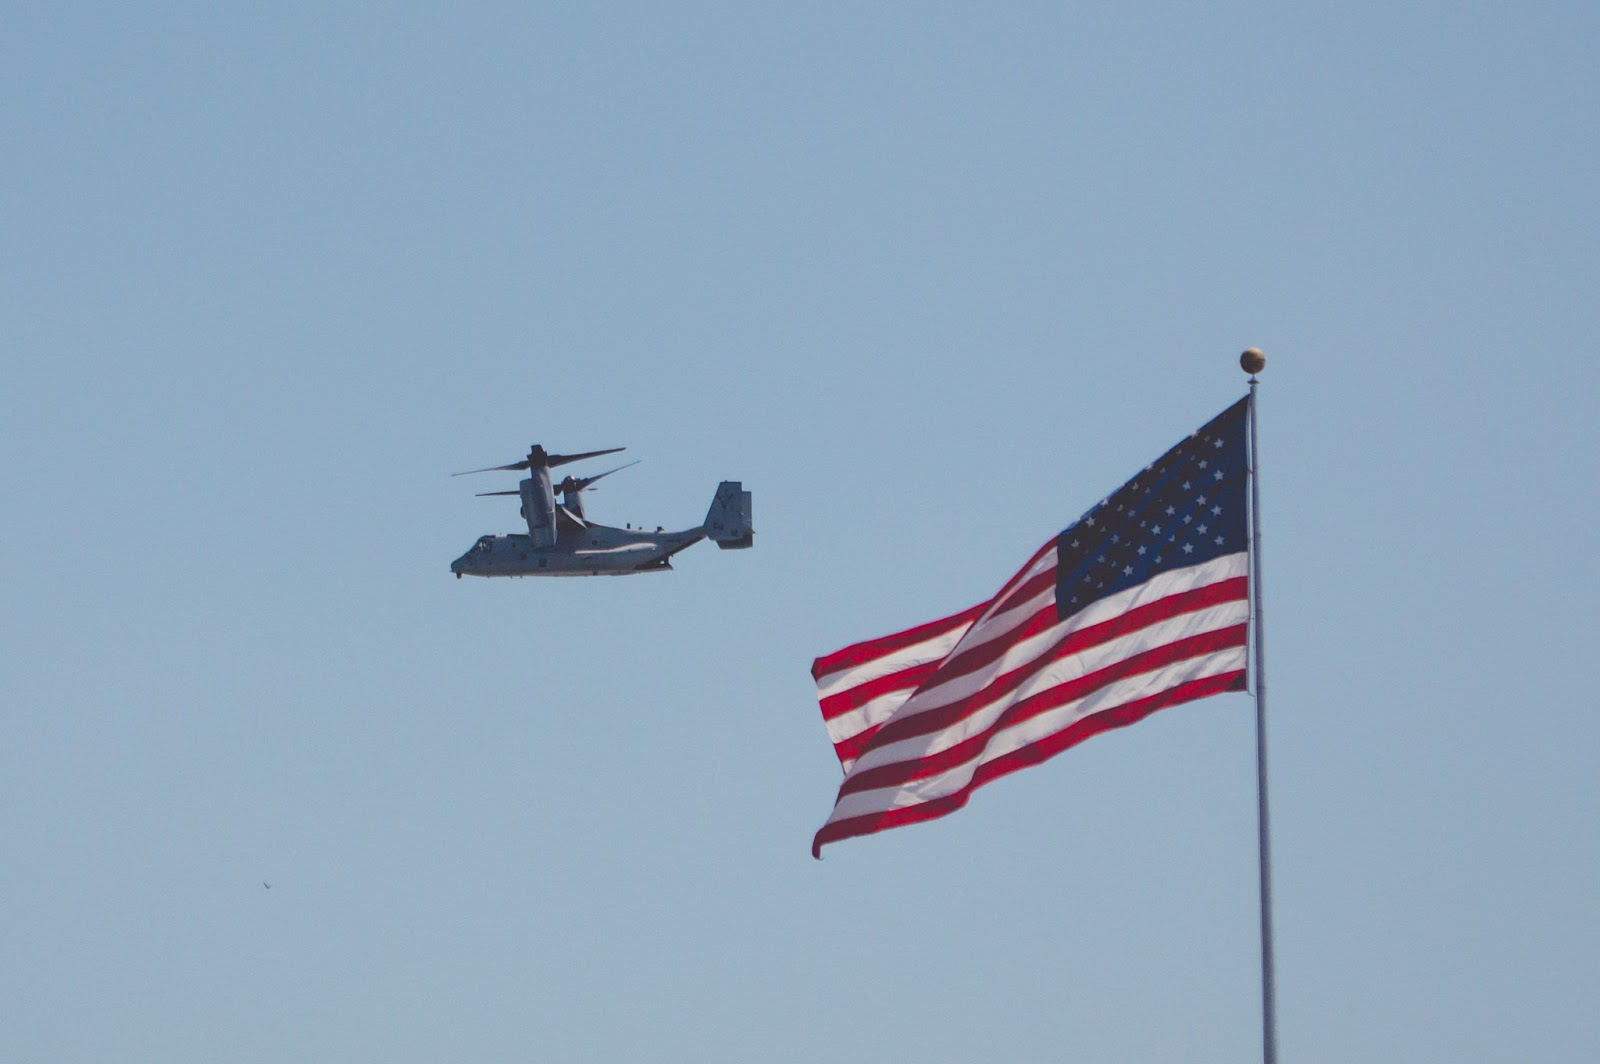 osprey, v-22, fleet week, nyc, new york city, american flag, new york